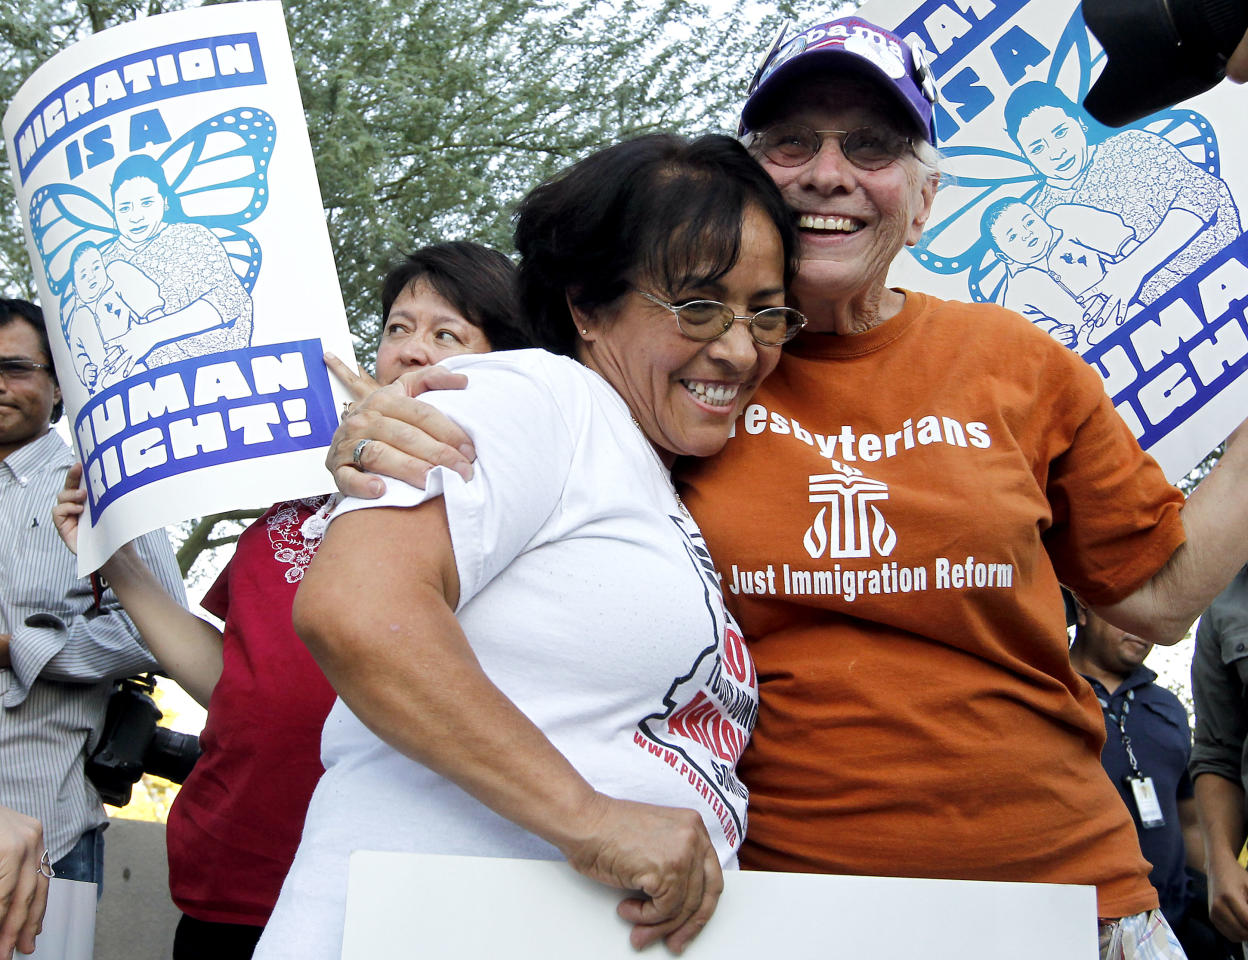 immigration and arizona The puente human rights movement is a grassroots migrant justice organization  based in phoenix, arizona we develop, educate, and empower migrant.